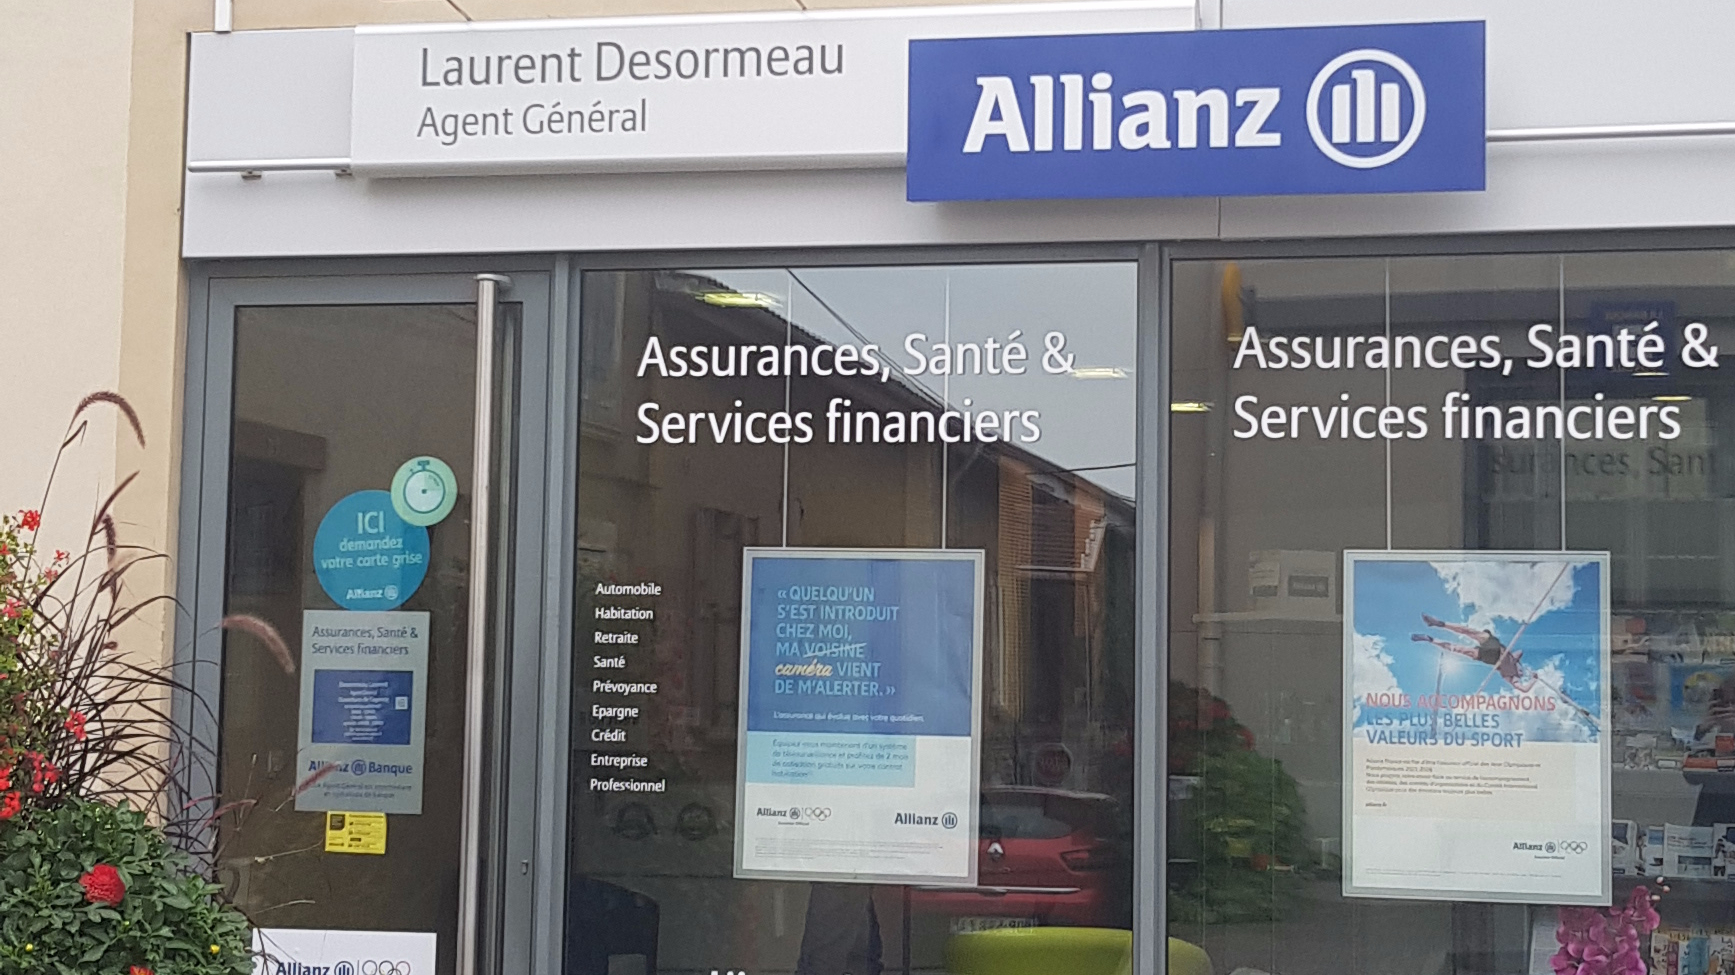 Allianz La cote st andre - Laurent DESORMEAU